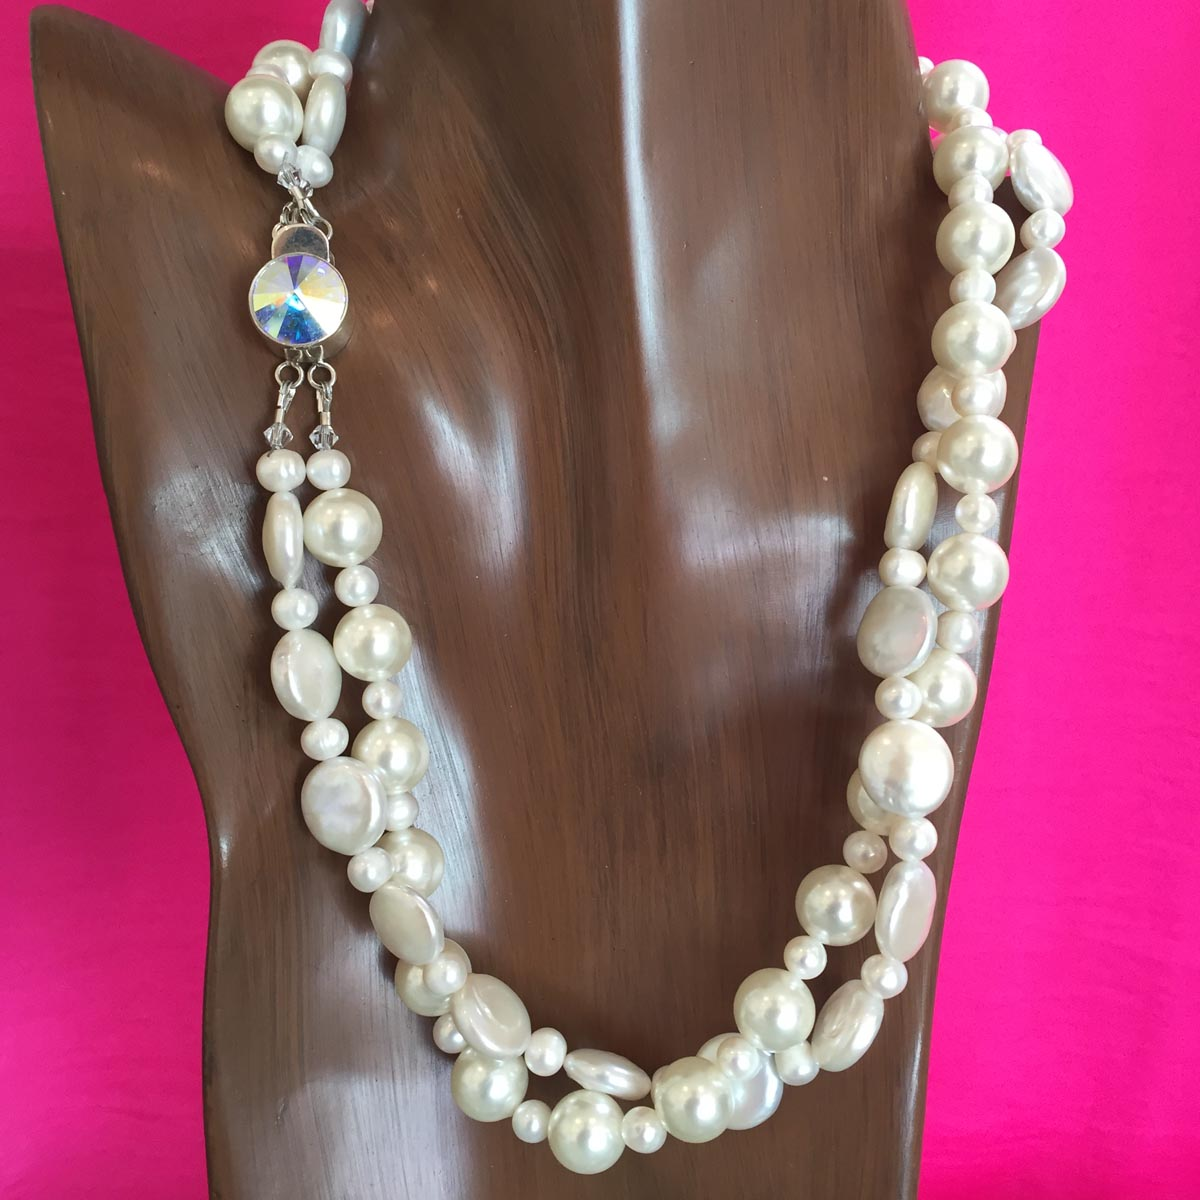 white pearl necklace with soin amp freshwater pearls and